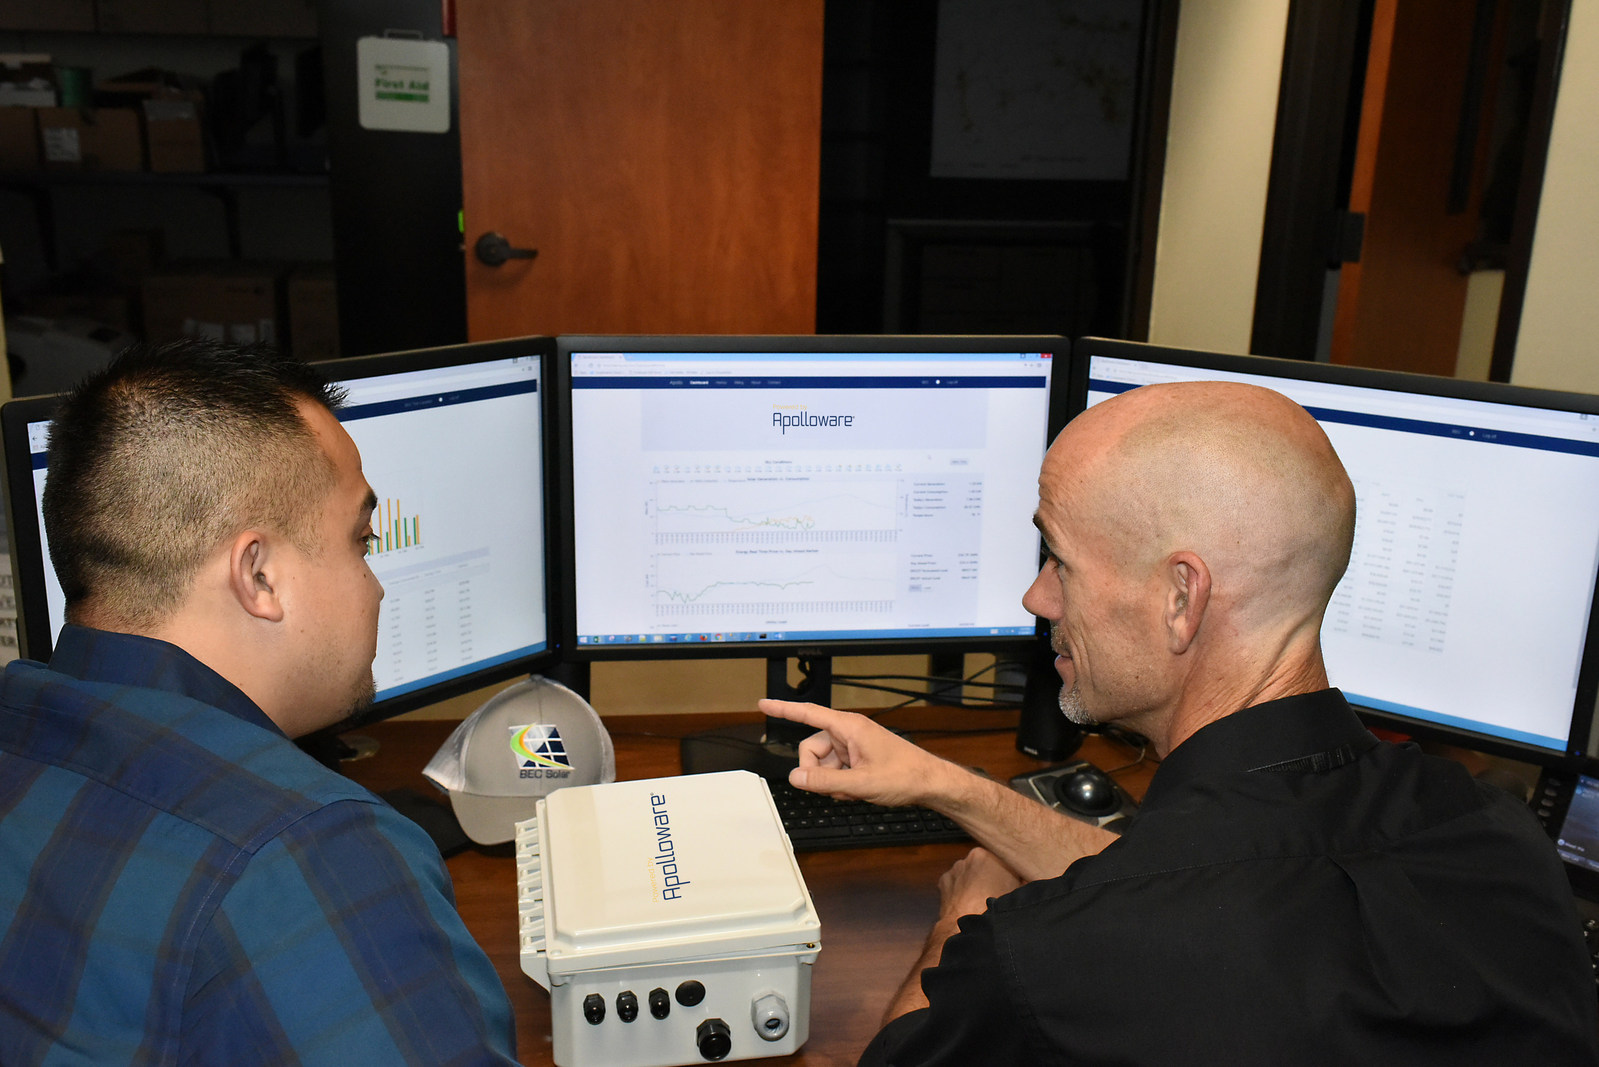 BEC Renewable Energy programme manager Miguel Rivera and database administrator Perry Holt test Apolloware. Source: PR Newswire